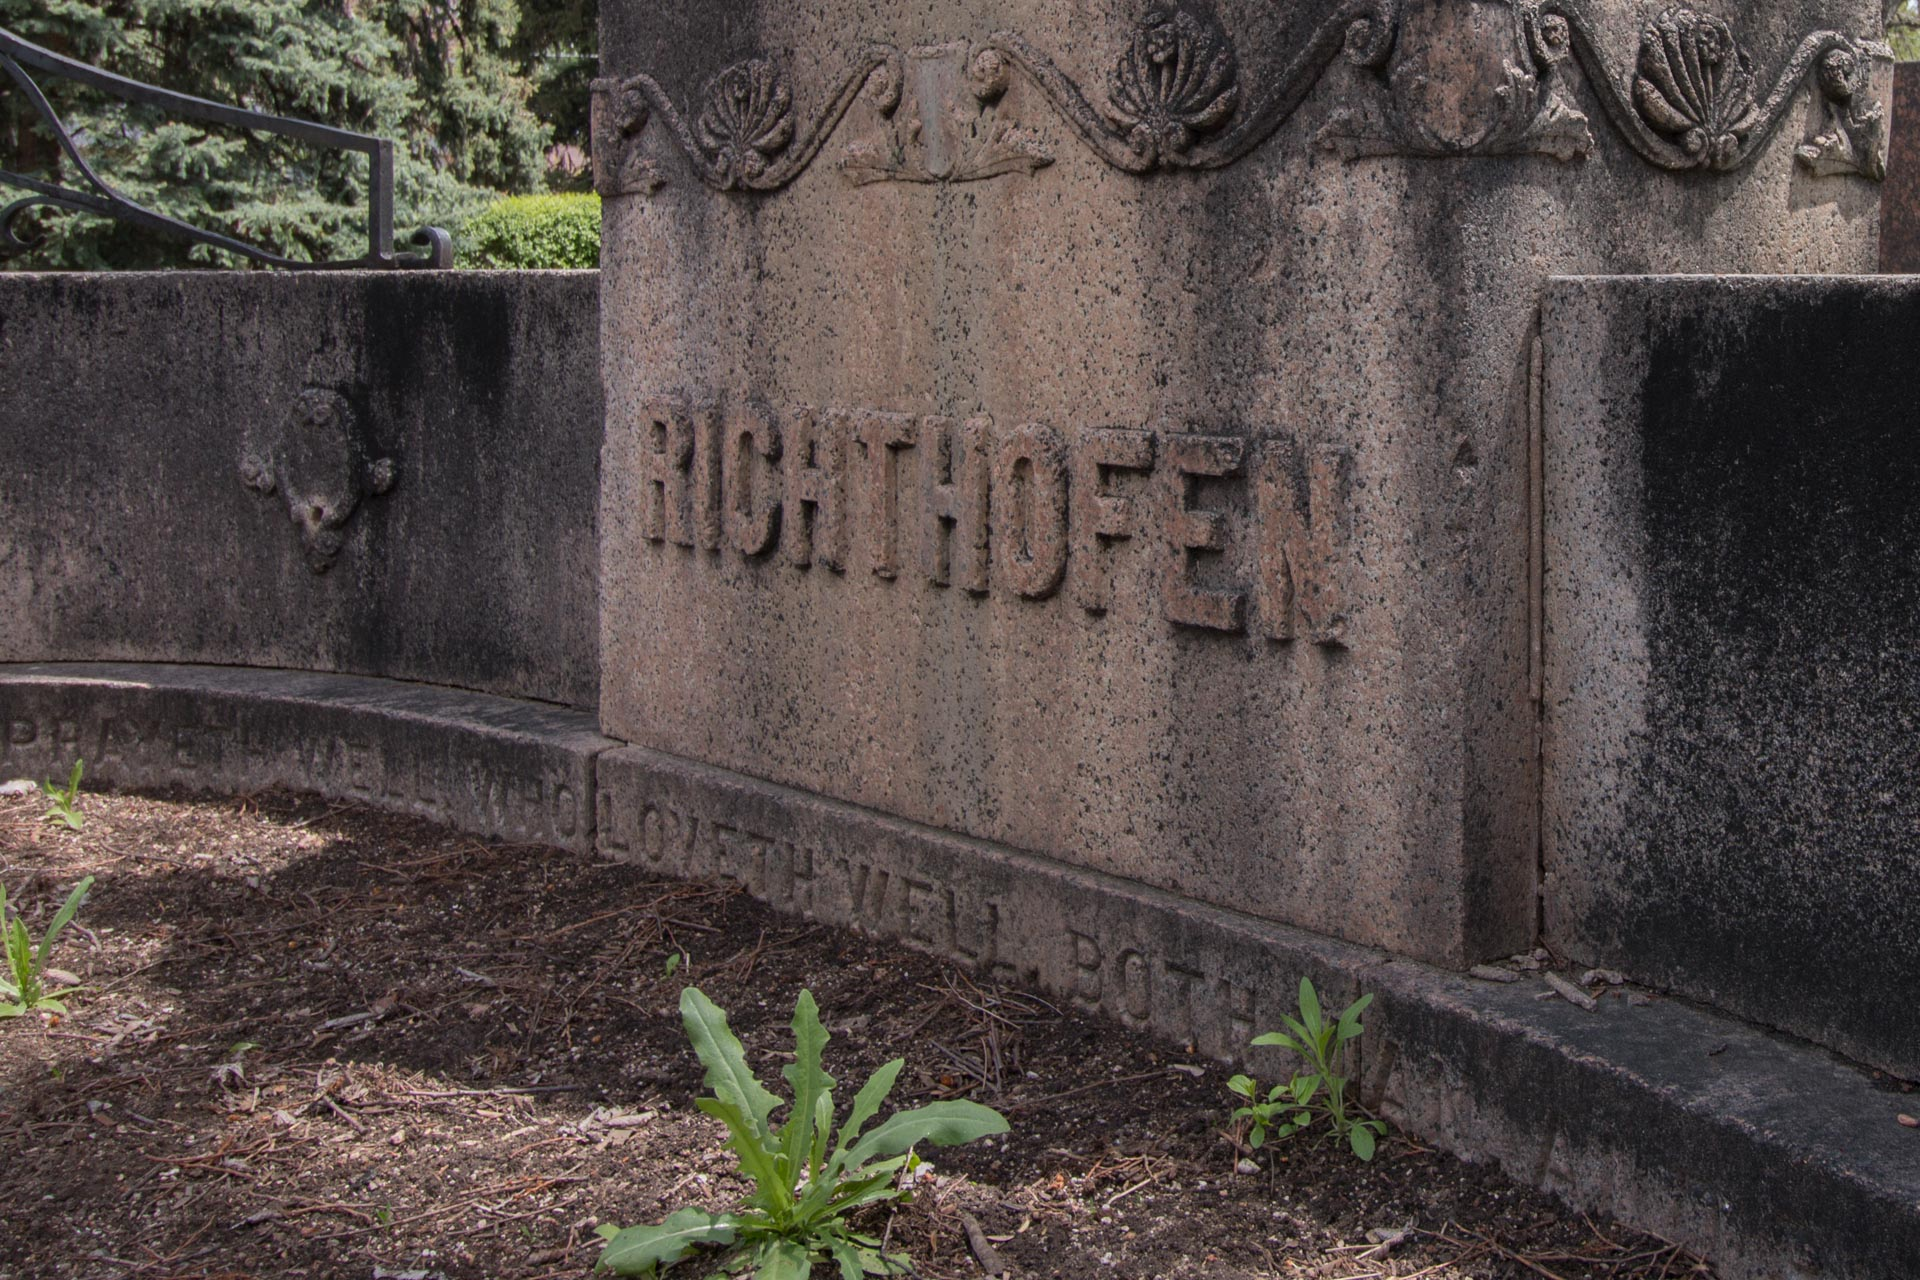 Historical marker in Montclair for Richthofen: Richthofen's wife's grave is located by this marker in the Montclair neighborhood.